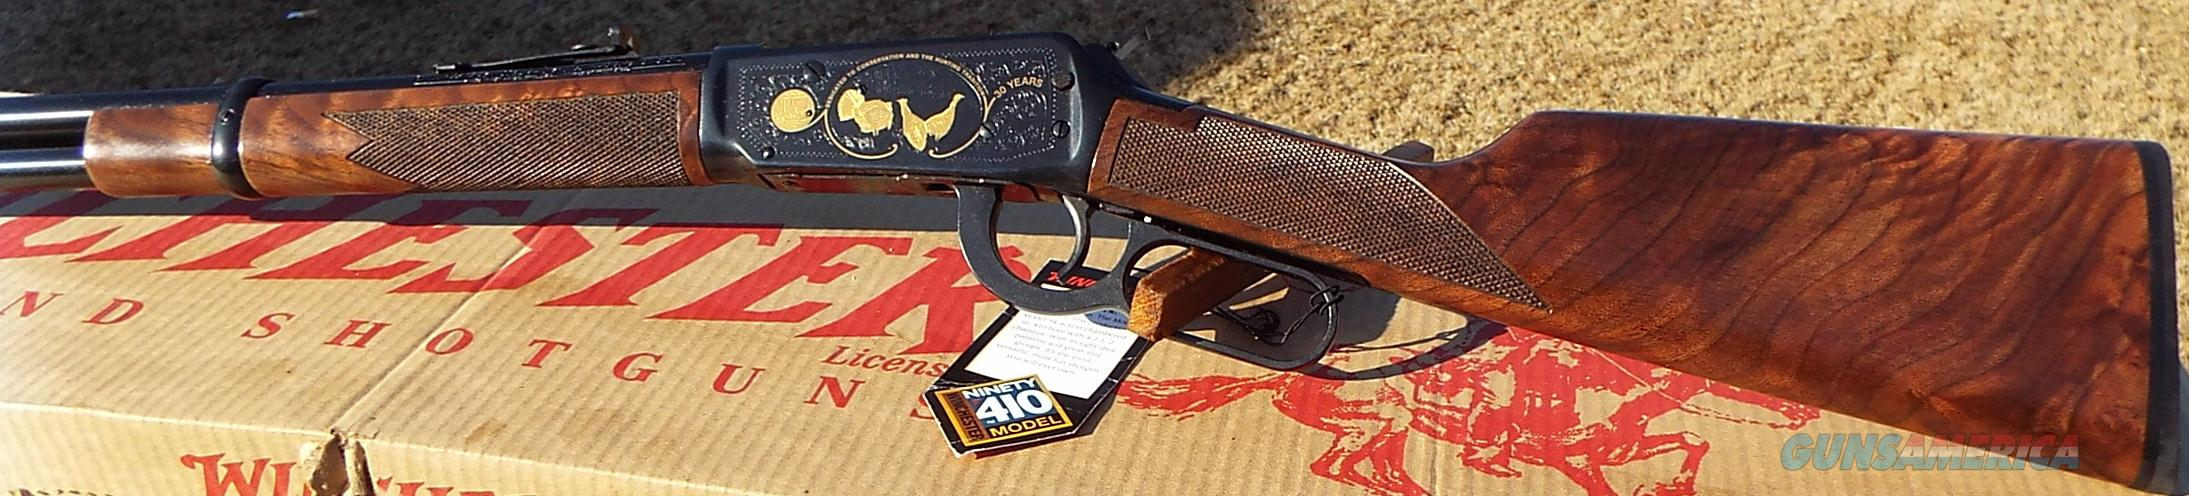 Winchester 9410 NWTF National Wild Turkey Fed. Engraved    410 ga.    New!      LAYAWAY OPTION      514011056  Guns > Shotguns > Winchester Shotguns - Modern > Pump Action > Hunting